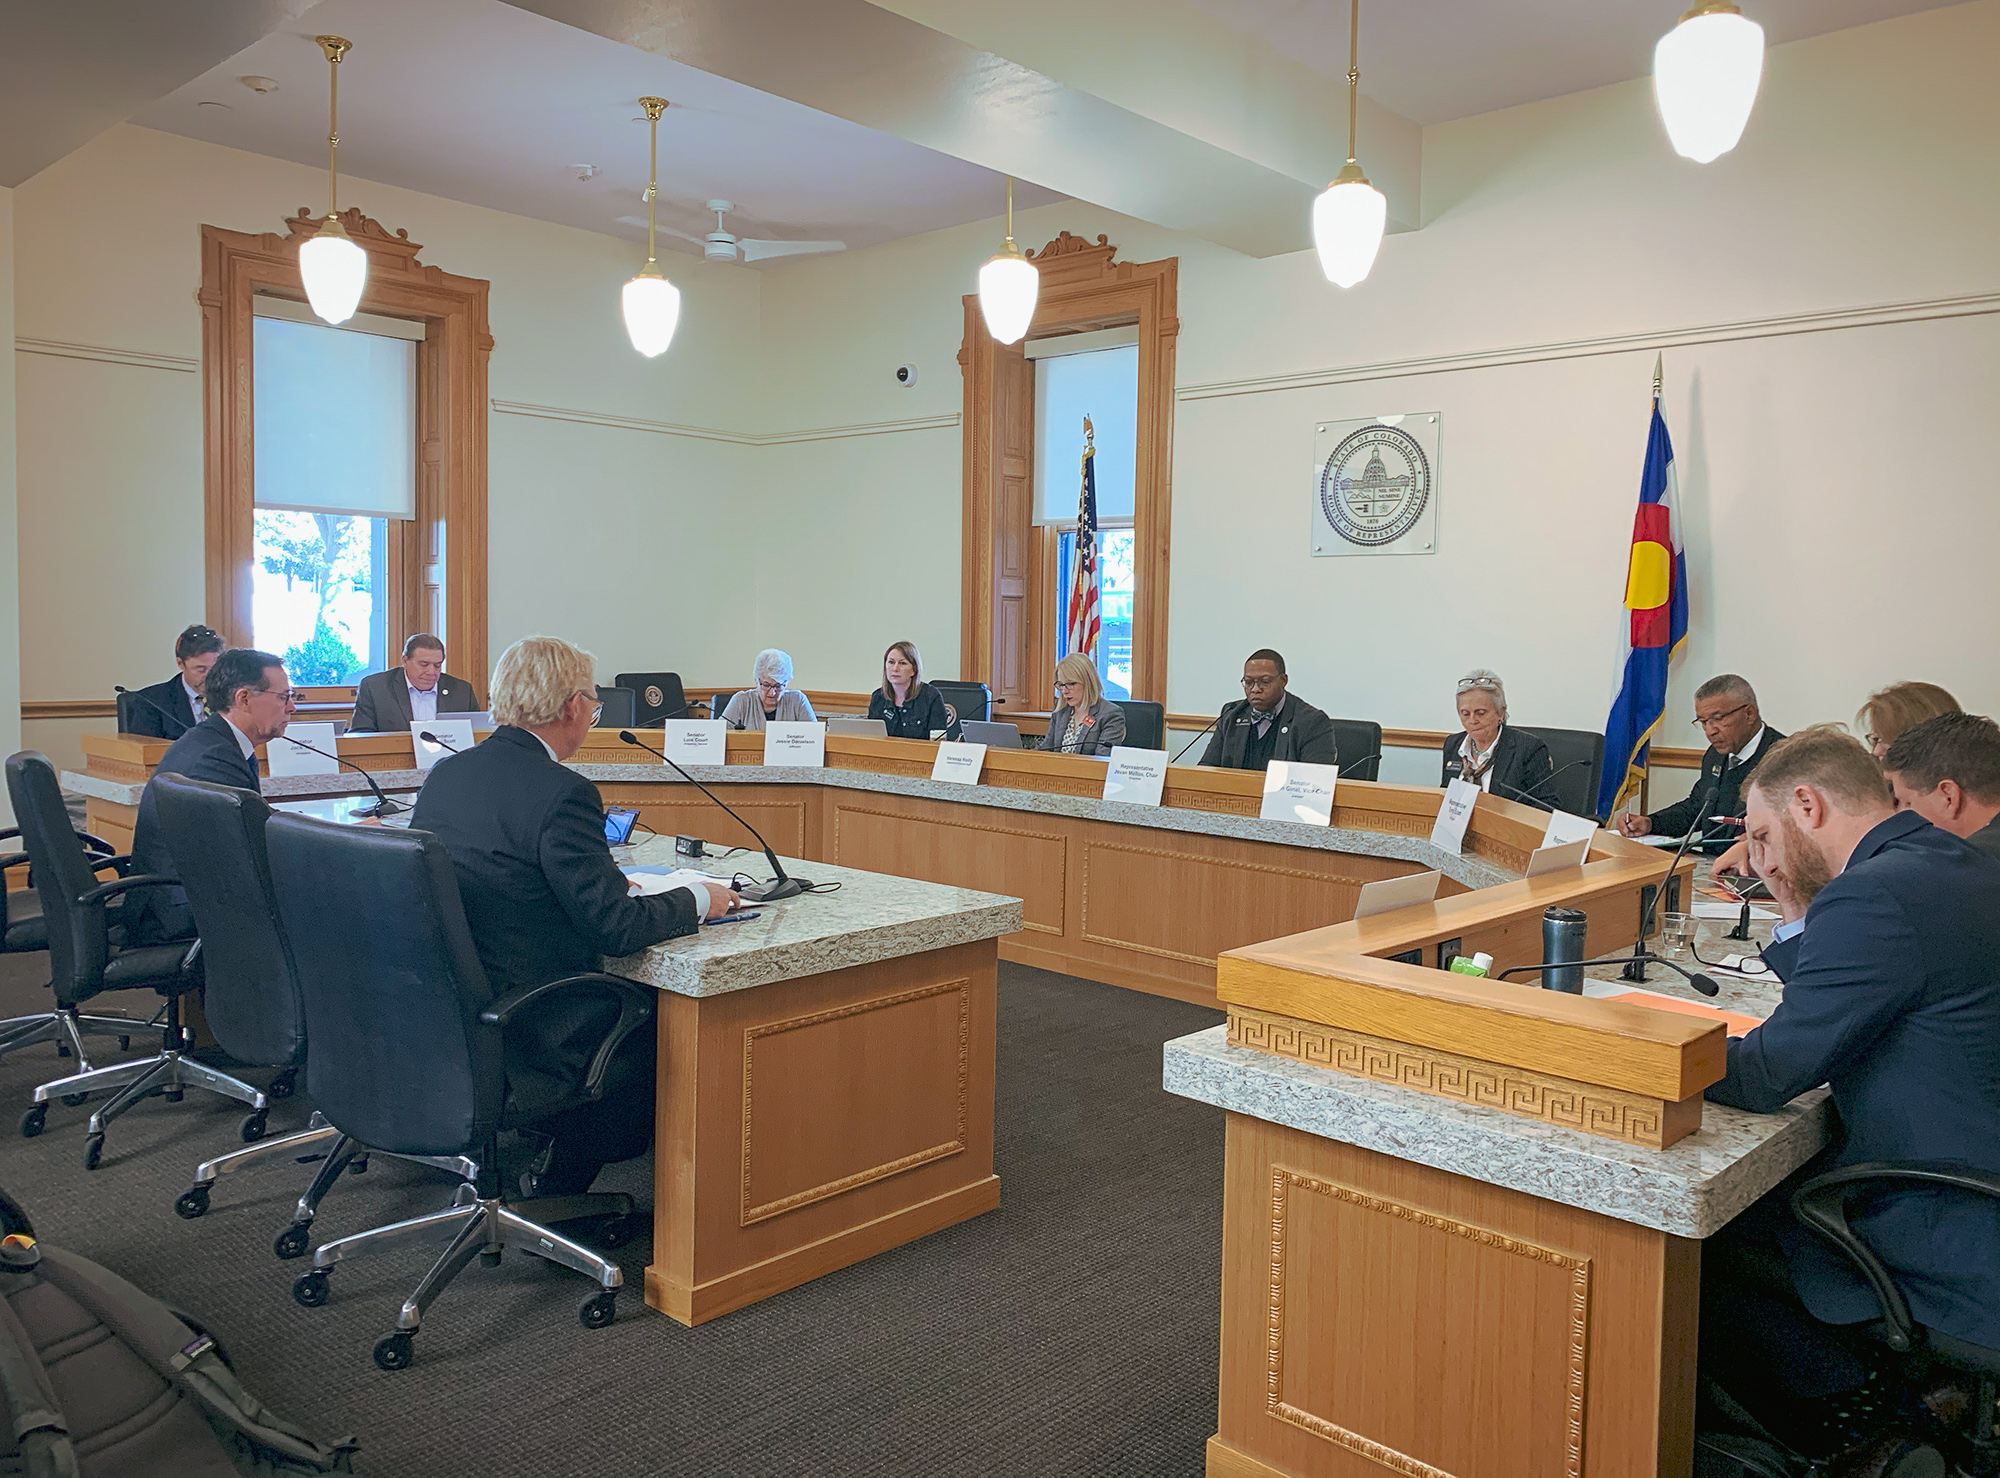 Presentation at the Colorado State Capitol